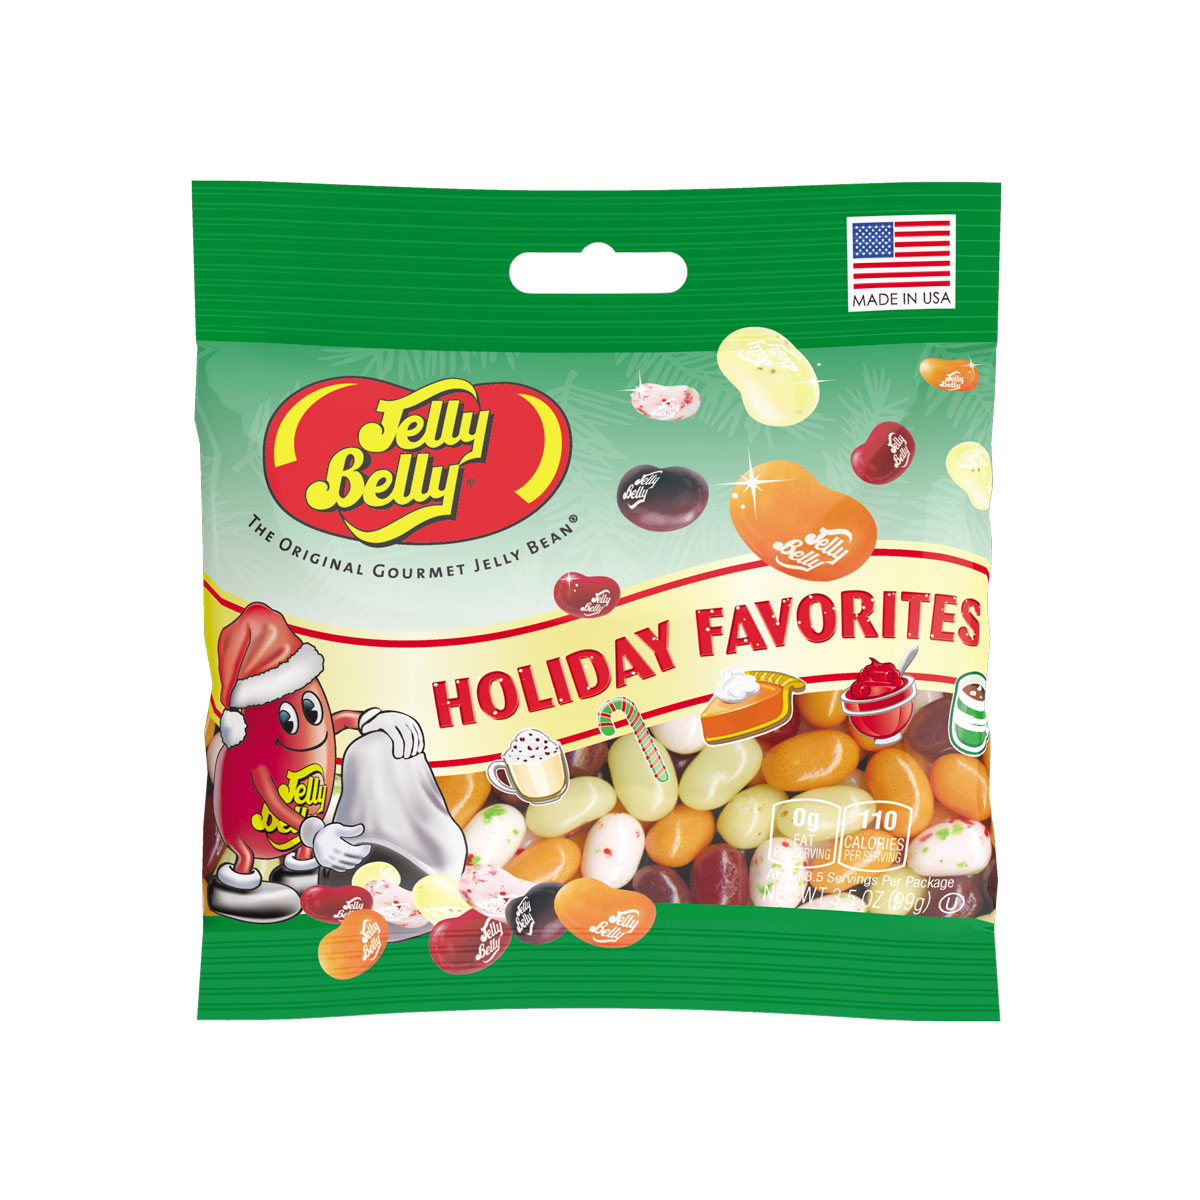 Holiday Favorites Jelly Bean 3.5 oz Gift Bag